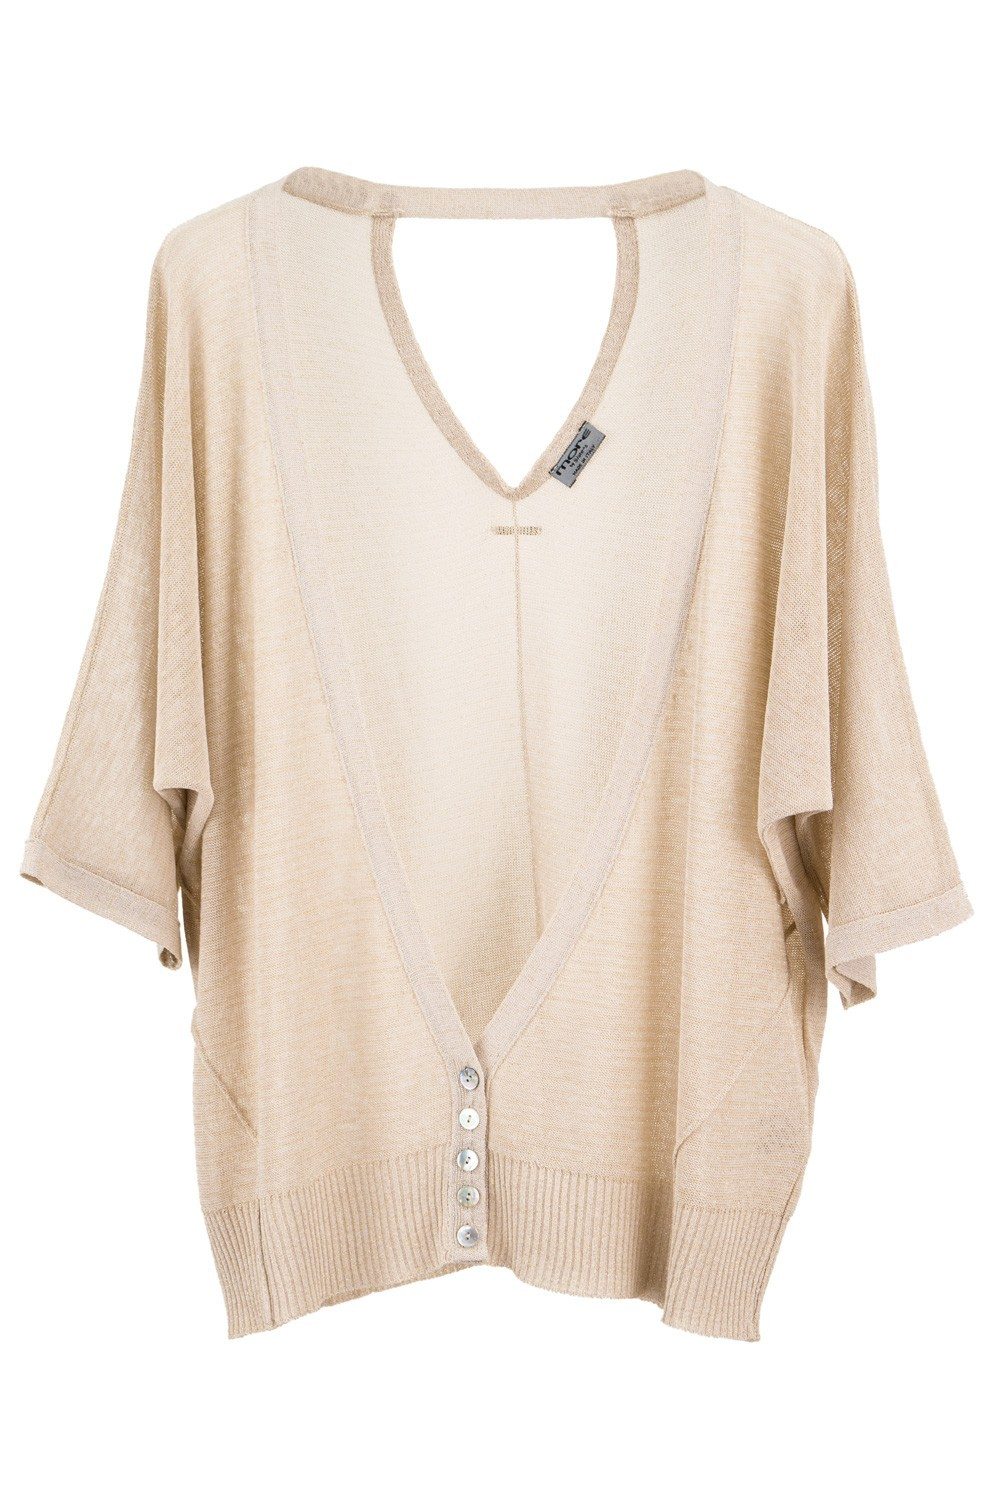 Plus Size Woman Light Amp Shining Short Cardigan More By